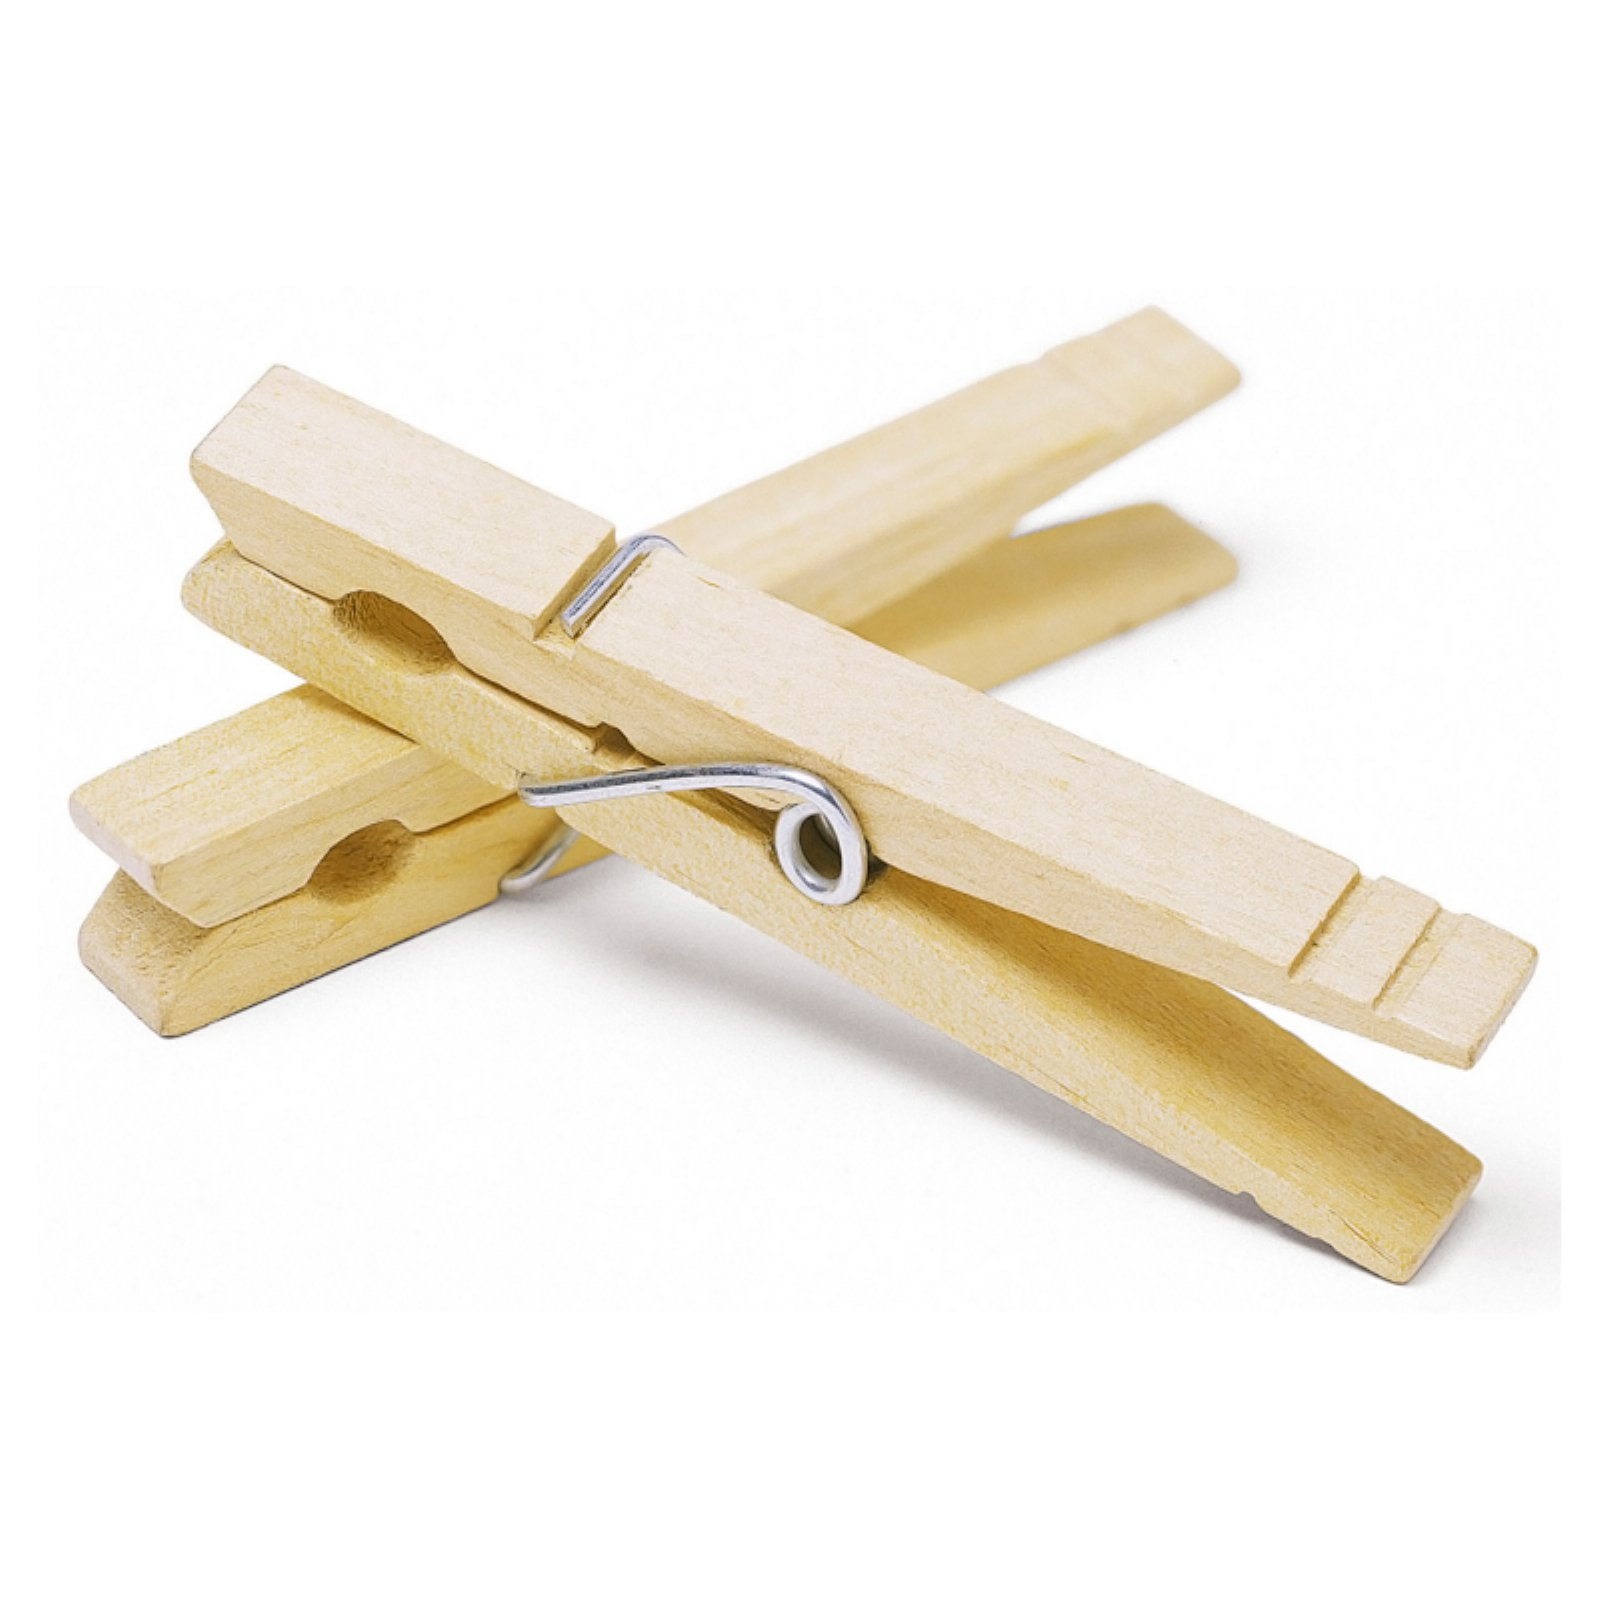 Whitmor 6026-868 Natural Wood Clothespins, 100 Count by Whitmor